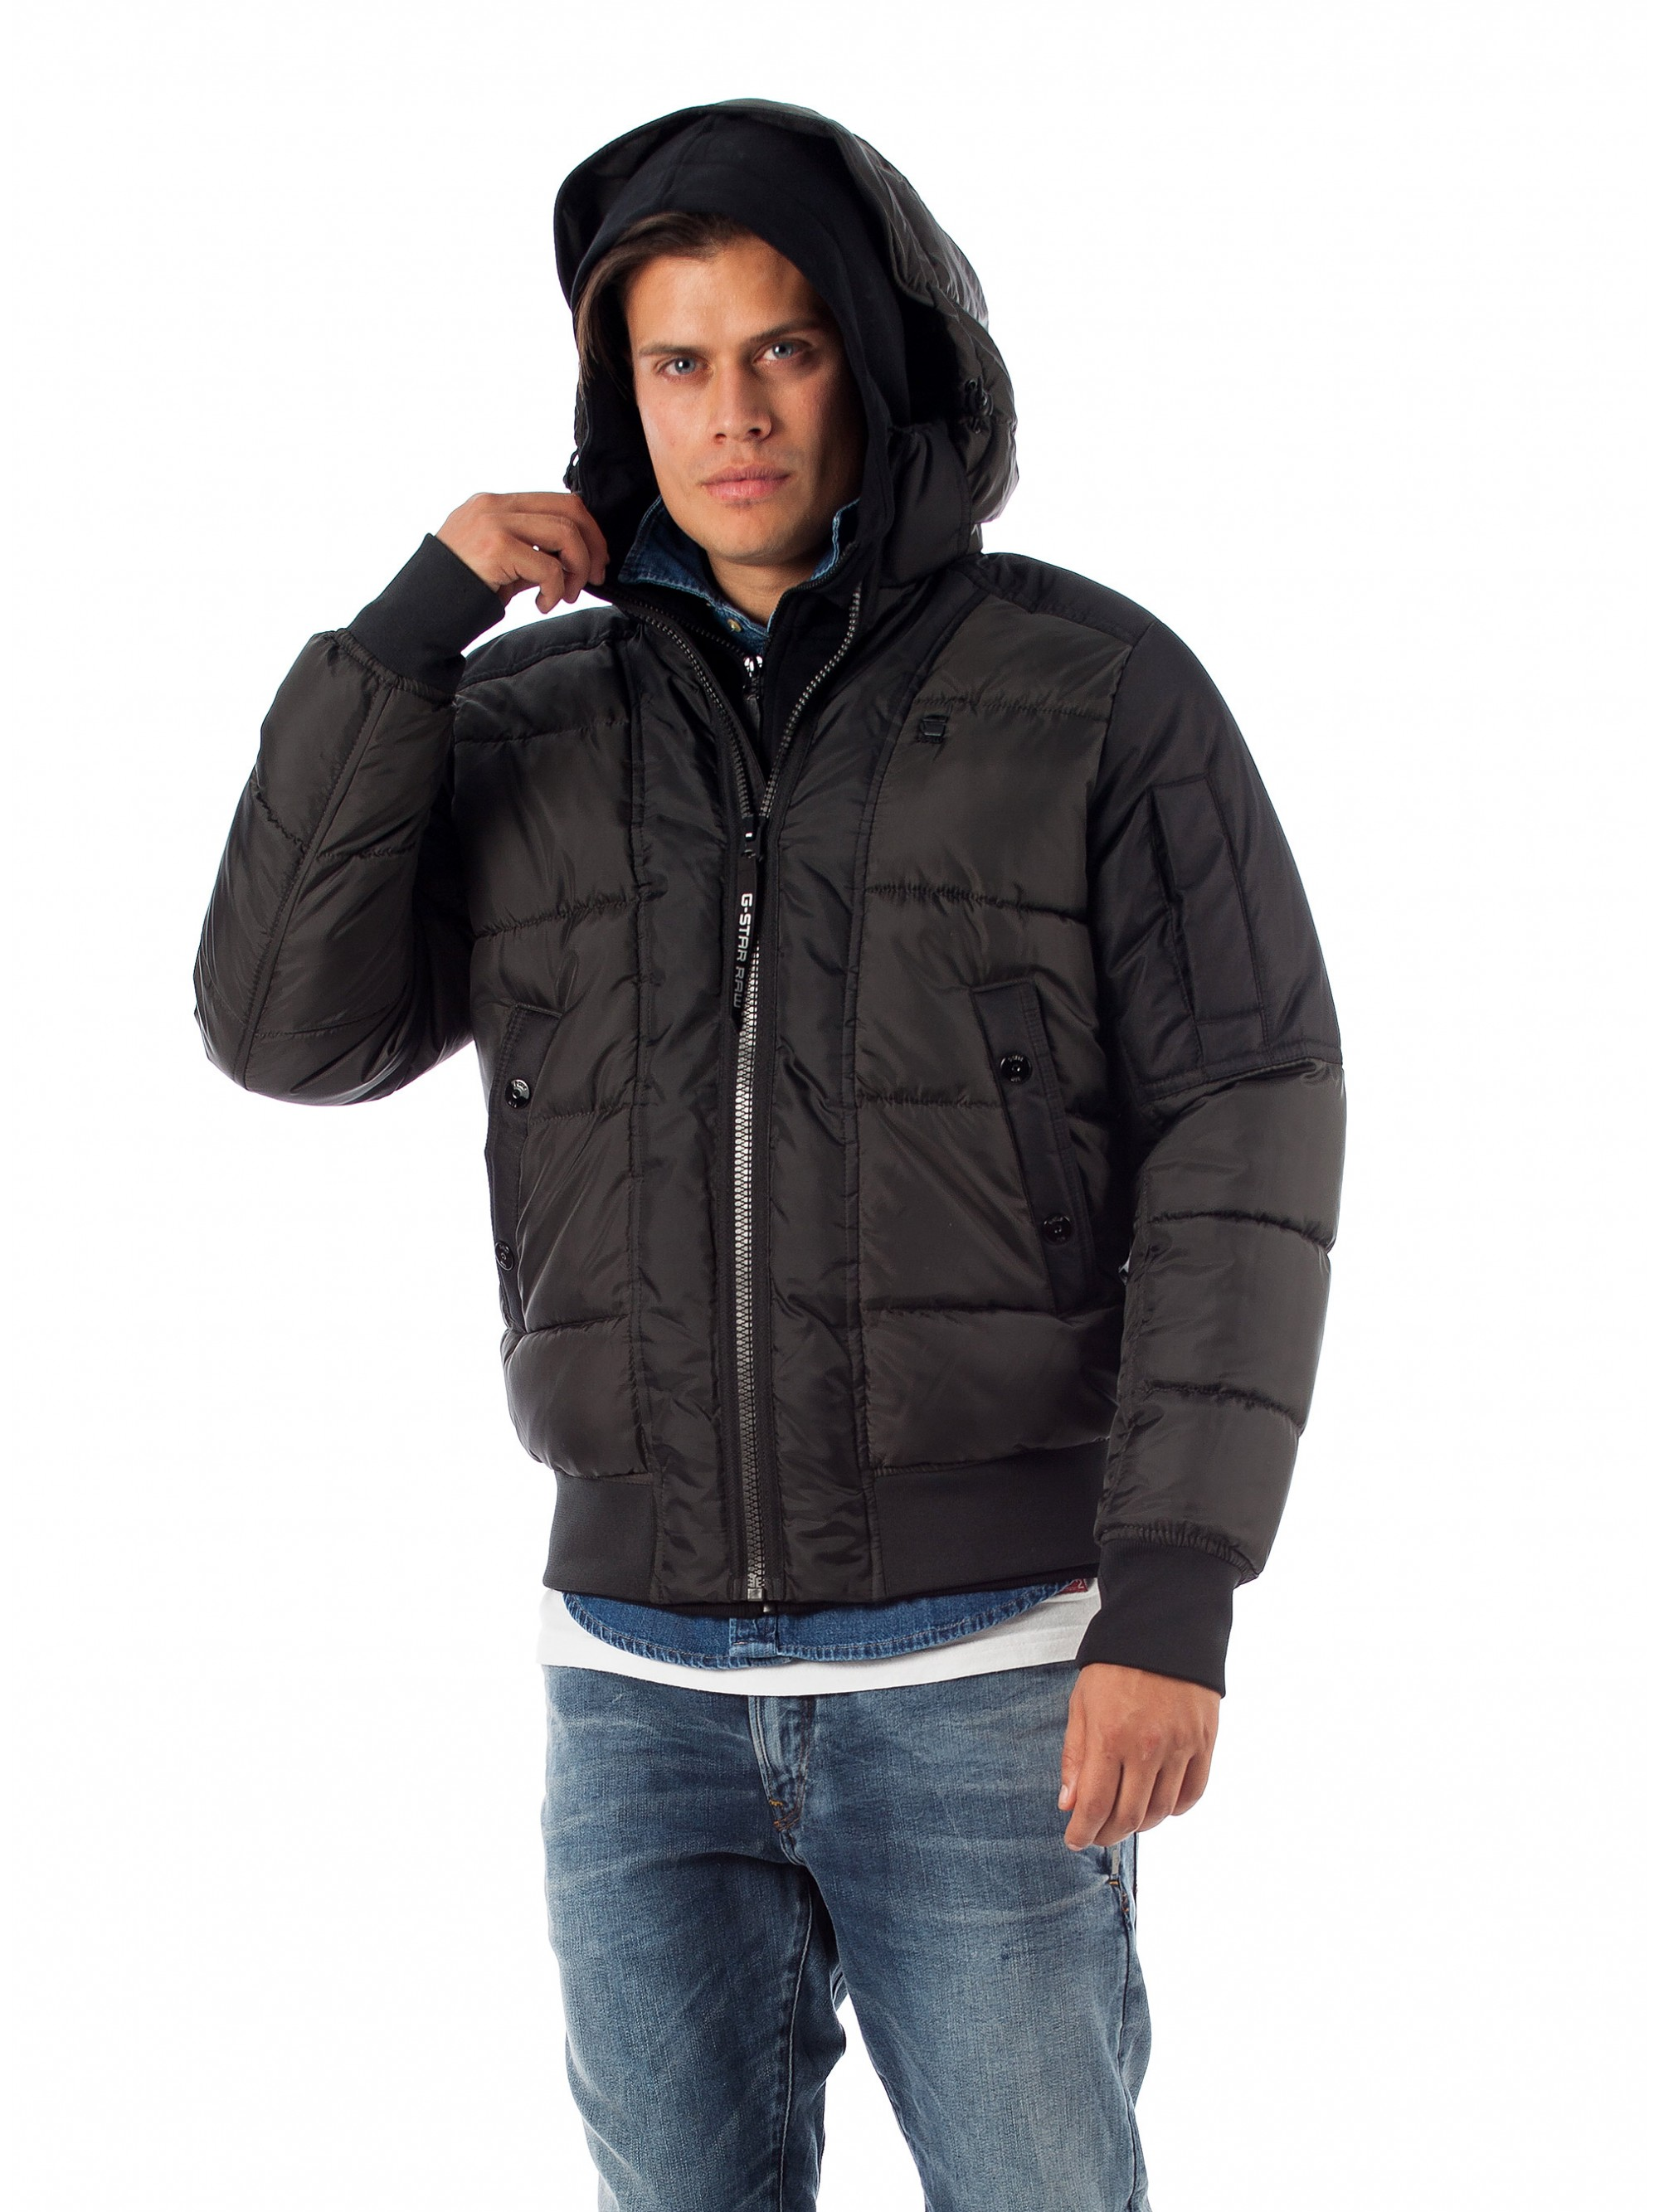 ab8bdab7699 ... Jackets & Coats; G-Star Whistler Quilted Hooded Bomber-Black. Tap to  expand